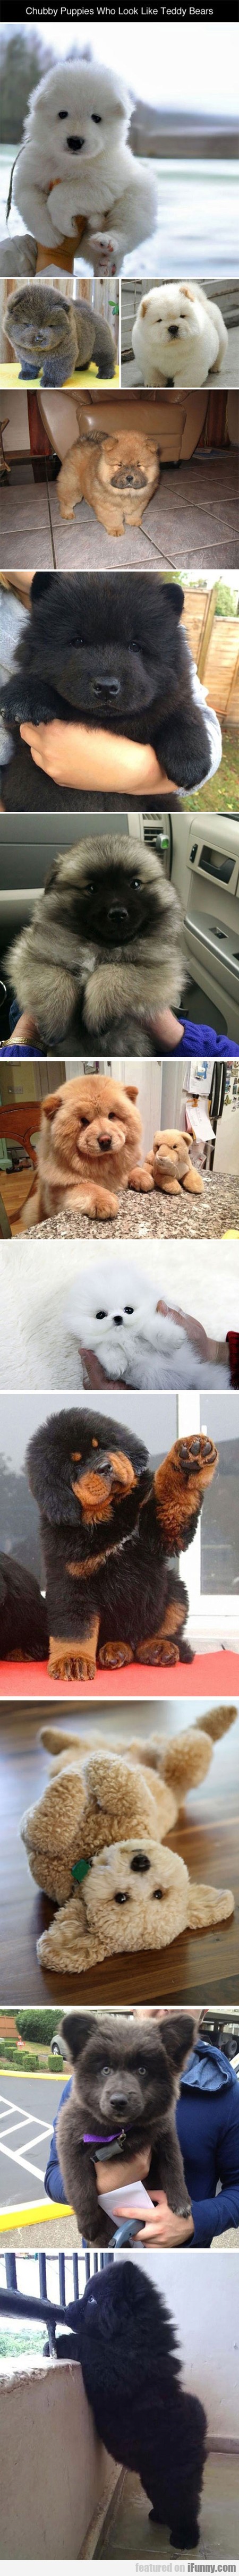 Some Puppies Who Look Like Teddy Bears